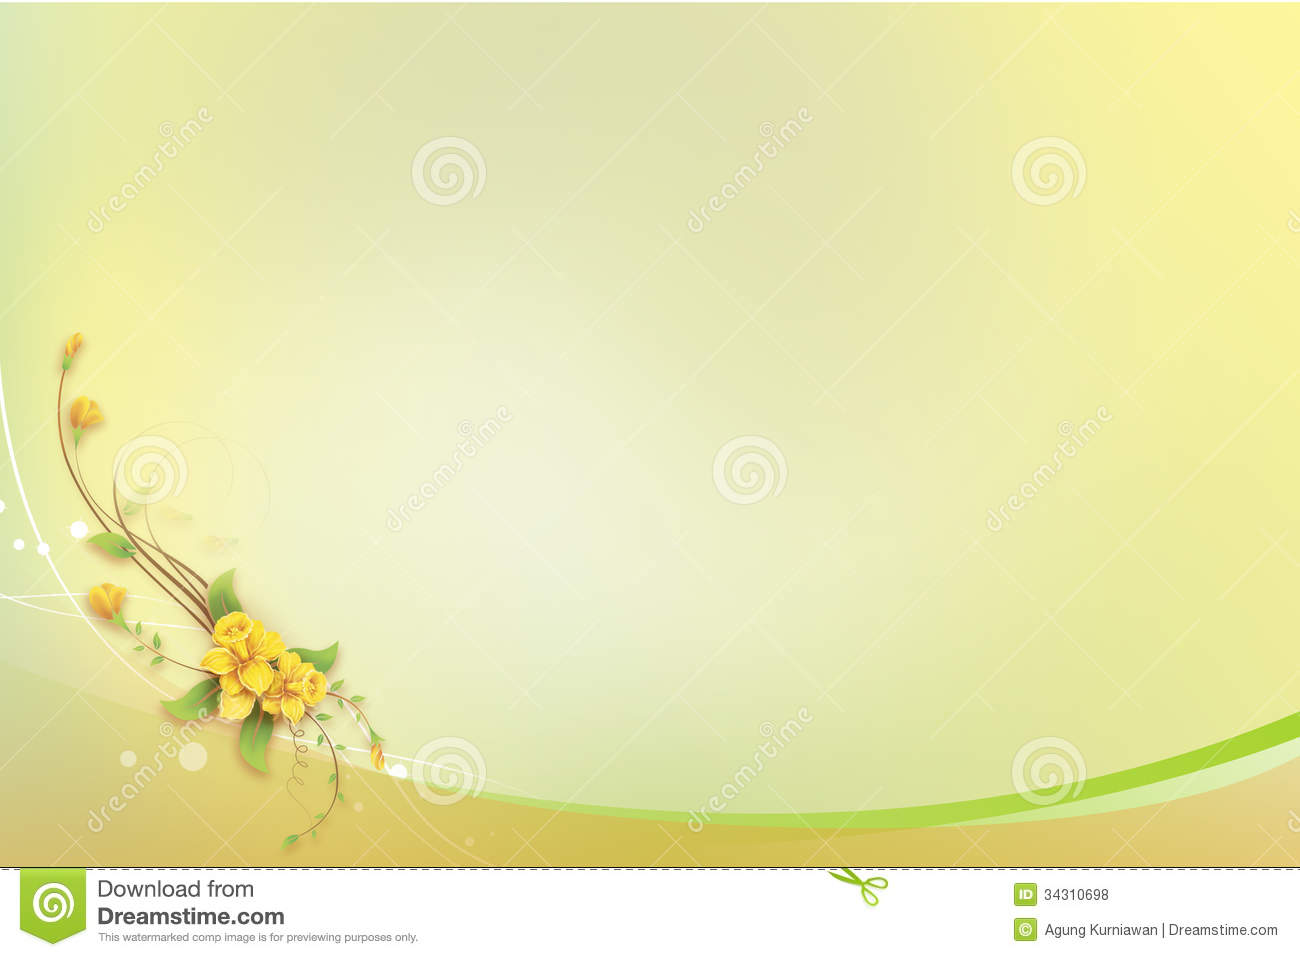 download abstract background with yellow flower for greetin stock illustration illustration of greetings designs